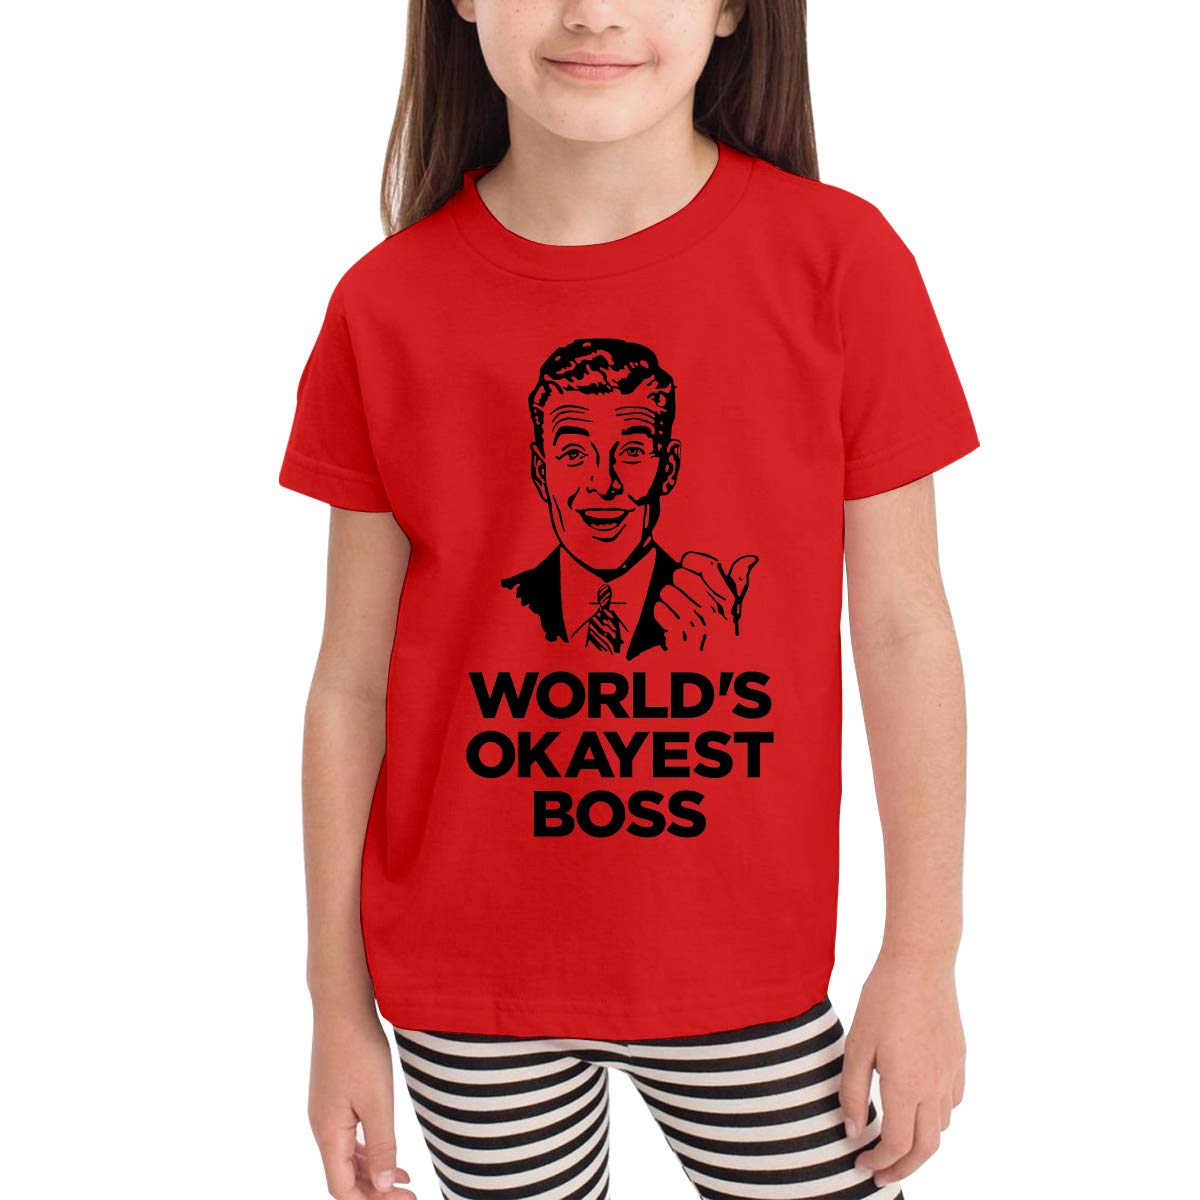 Worlds Okayest Boss Novelty Cotton T Shirt Personality White Tee for Toddler Kids Boys Girls